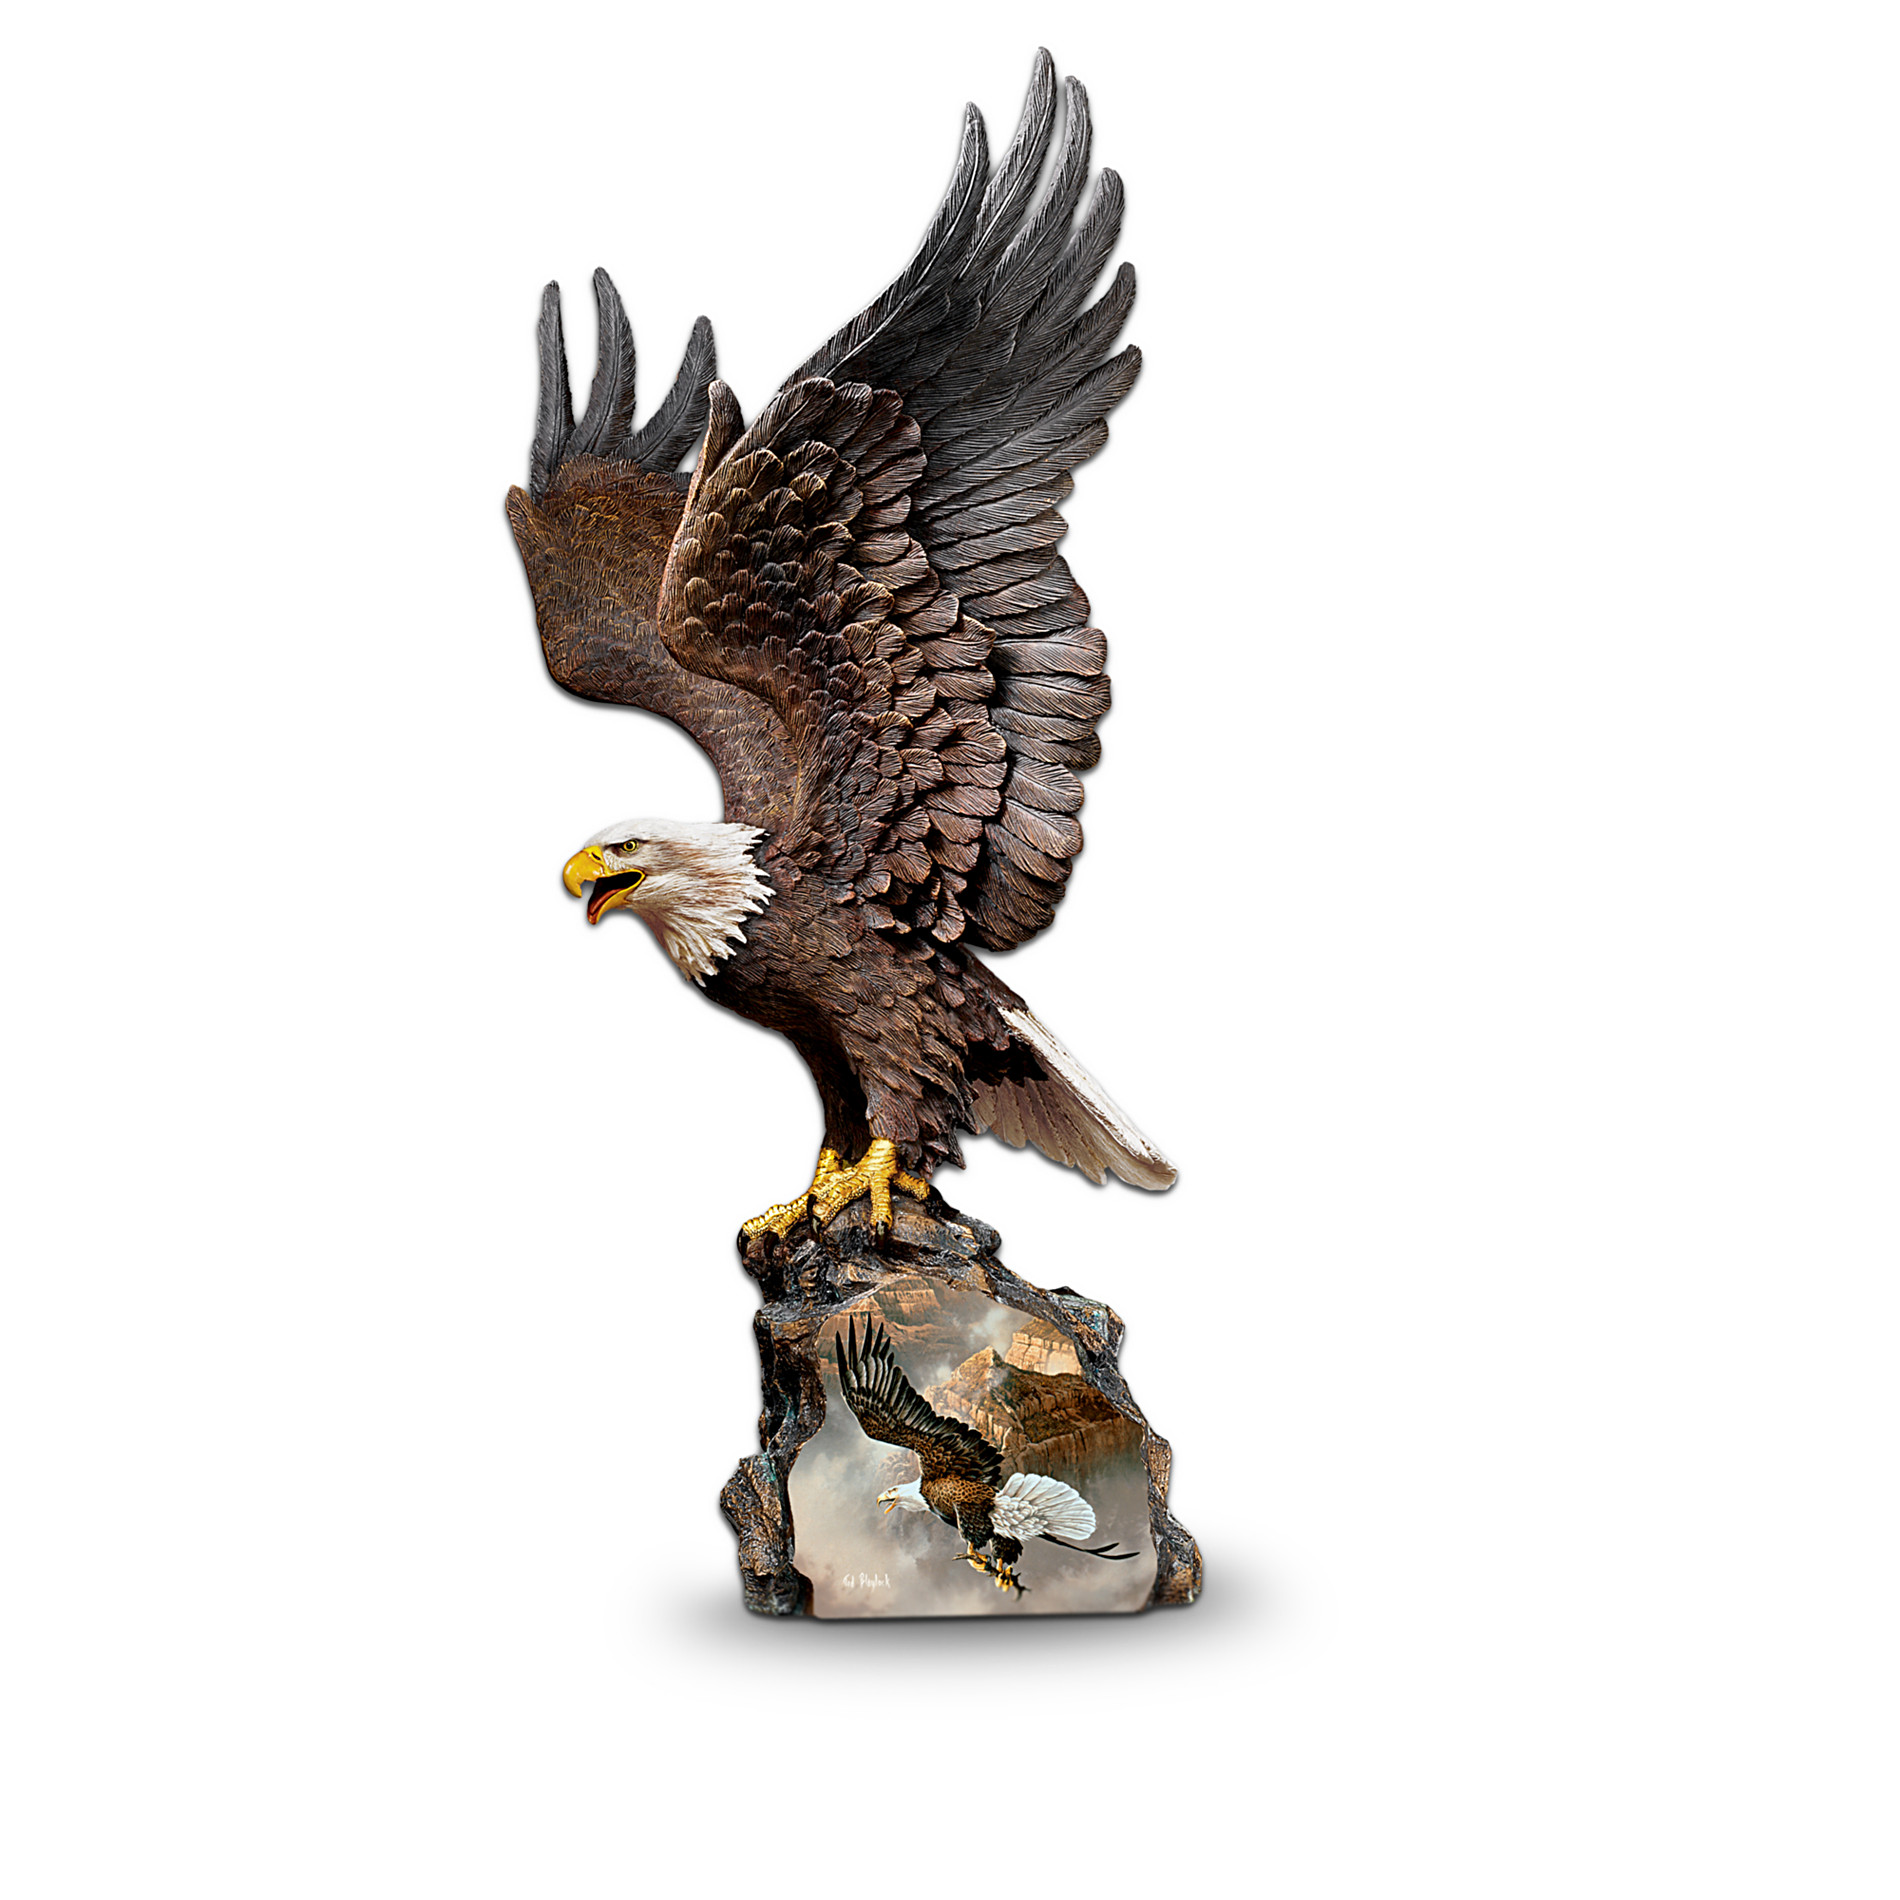 The Bradford Exchange Ted Blaylock's Winged Protectors Collectible Eagle Sculpture Collection at Sears.com